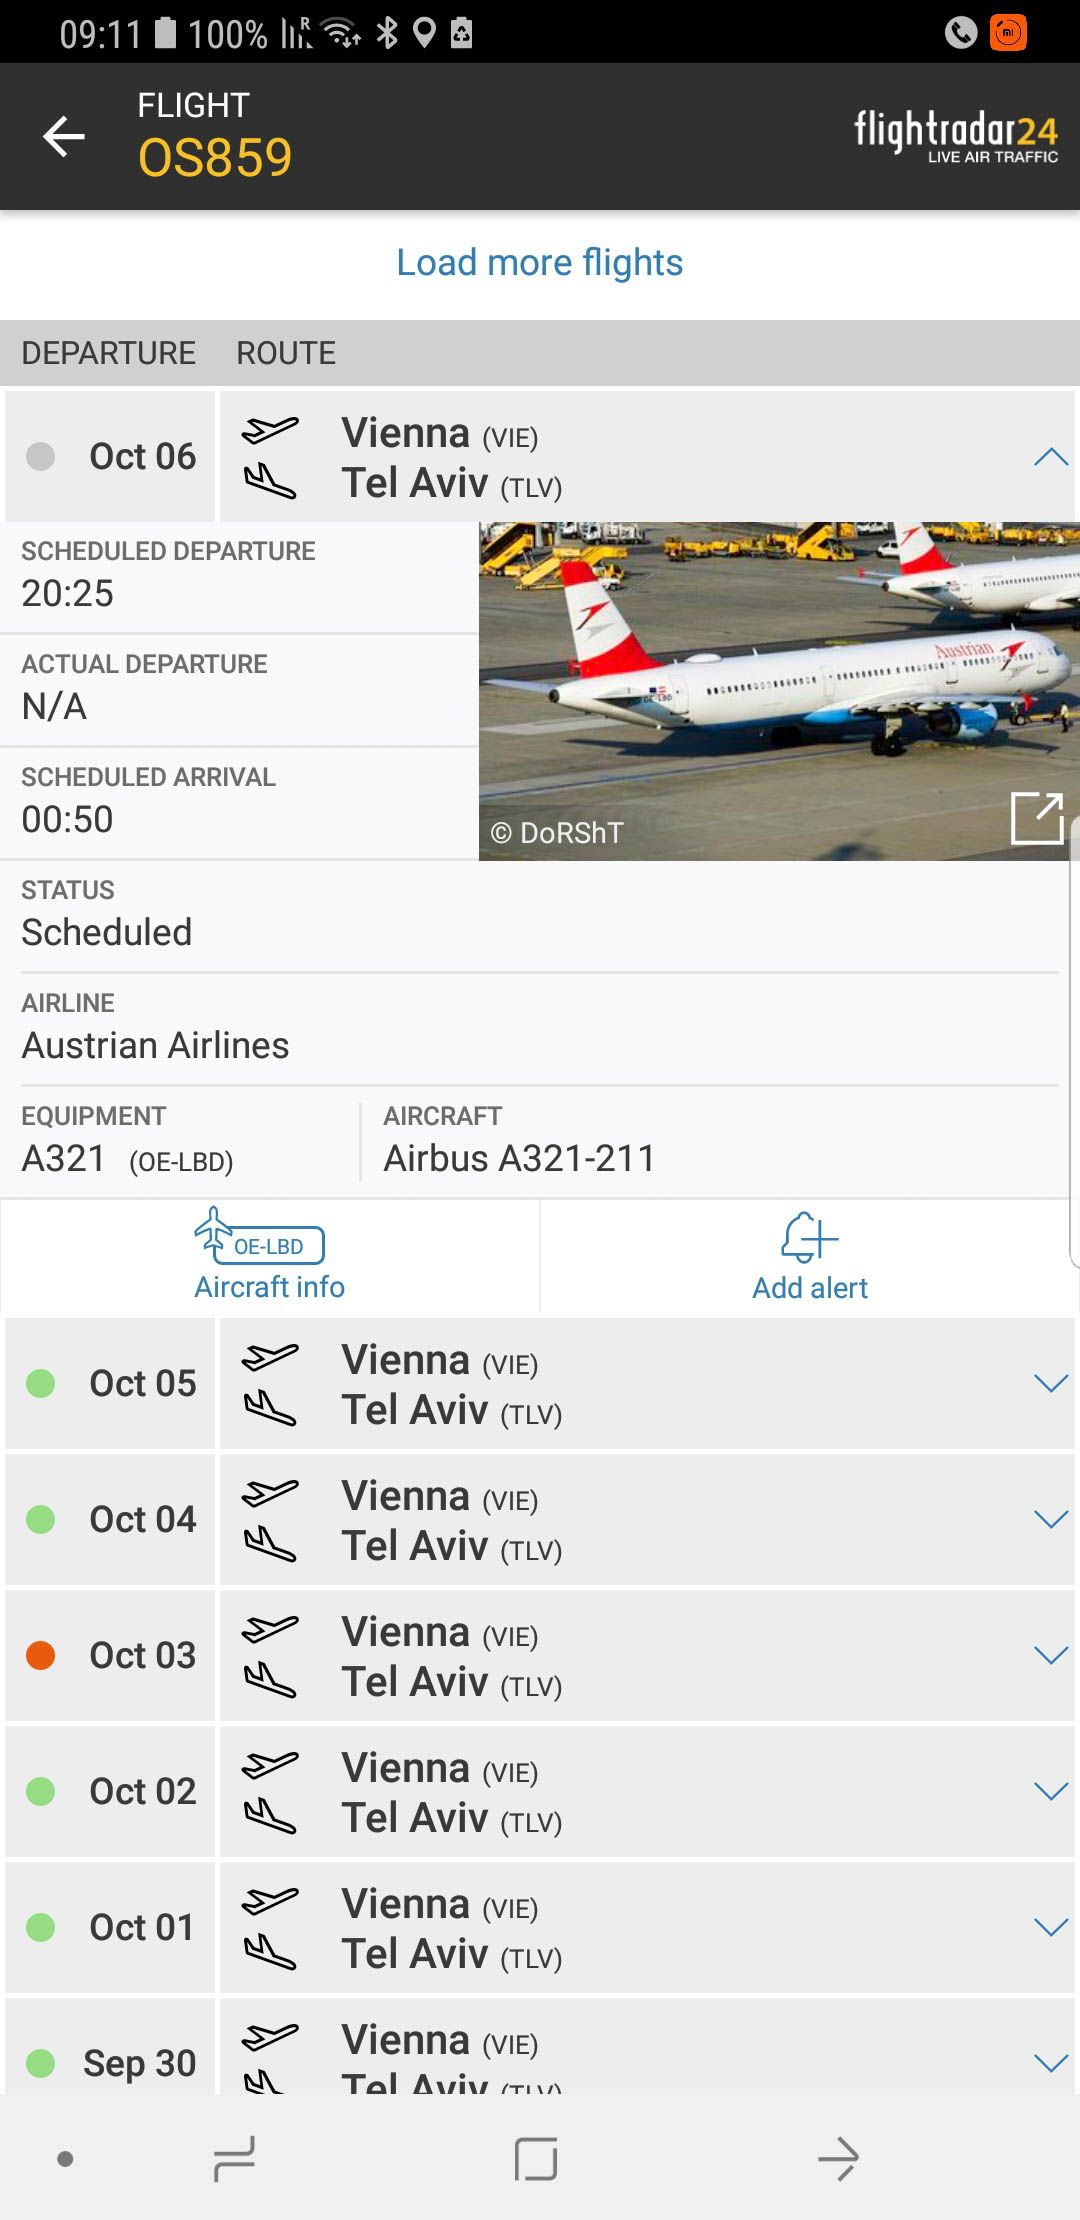 photo screenshot_20181006-091115_flightradar24